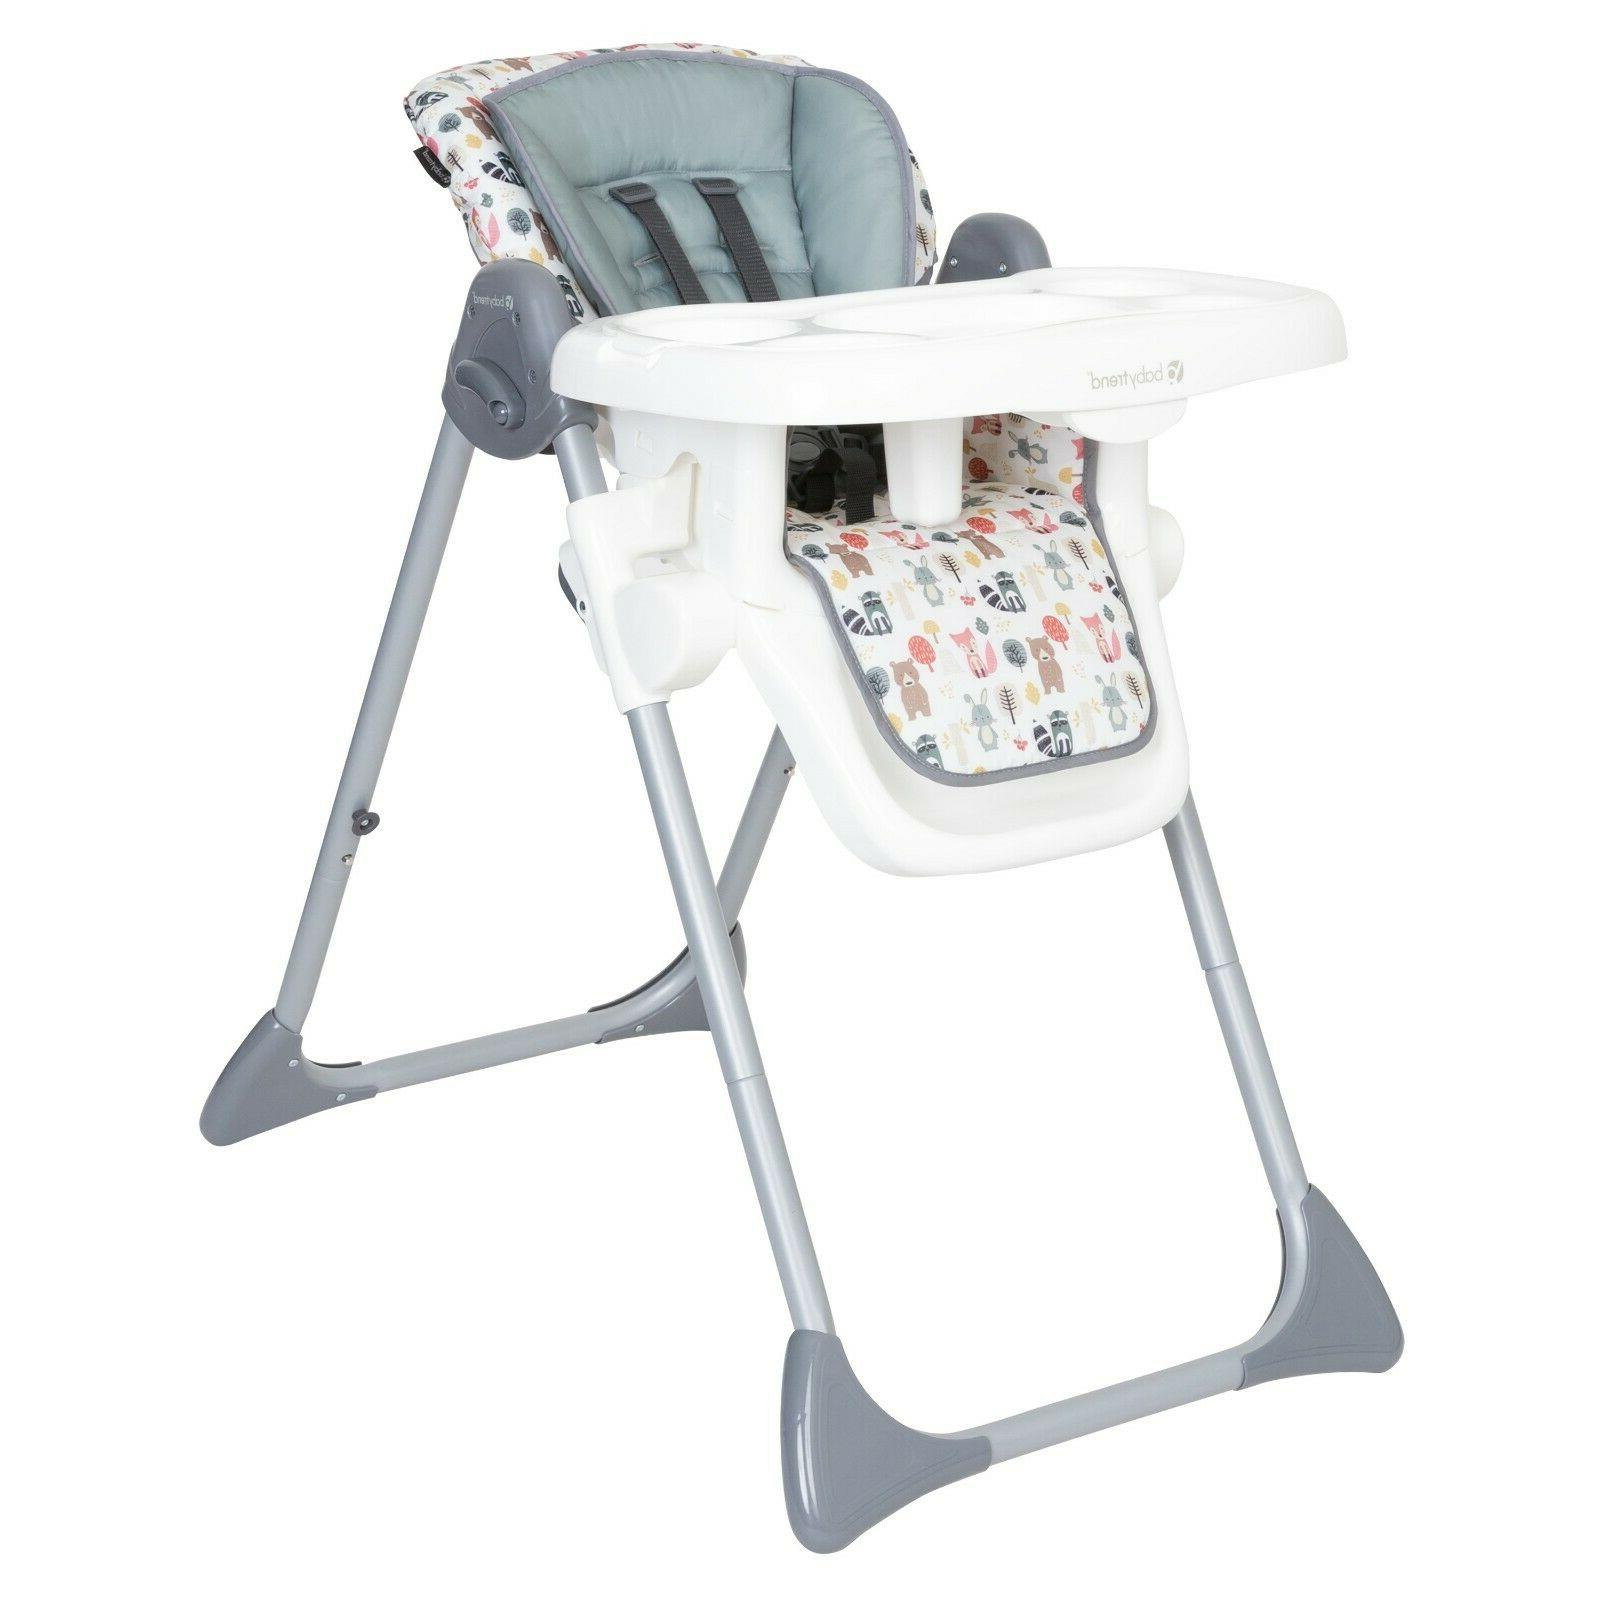 Baby Sturdy Adjustable Elevated Mealtime Seat Foldable